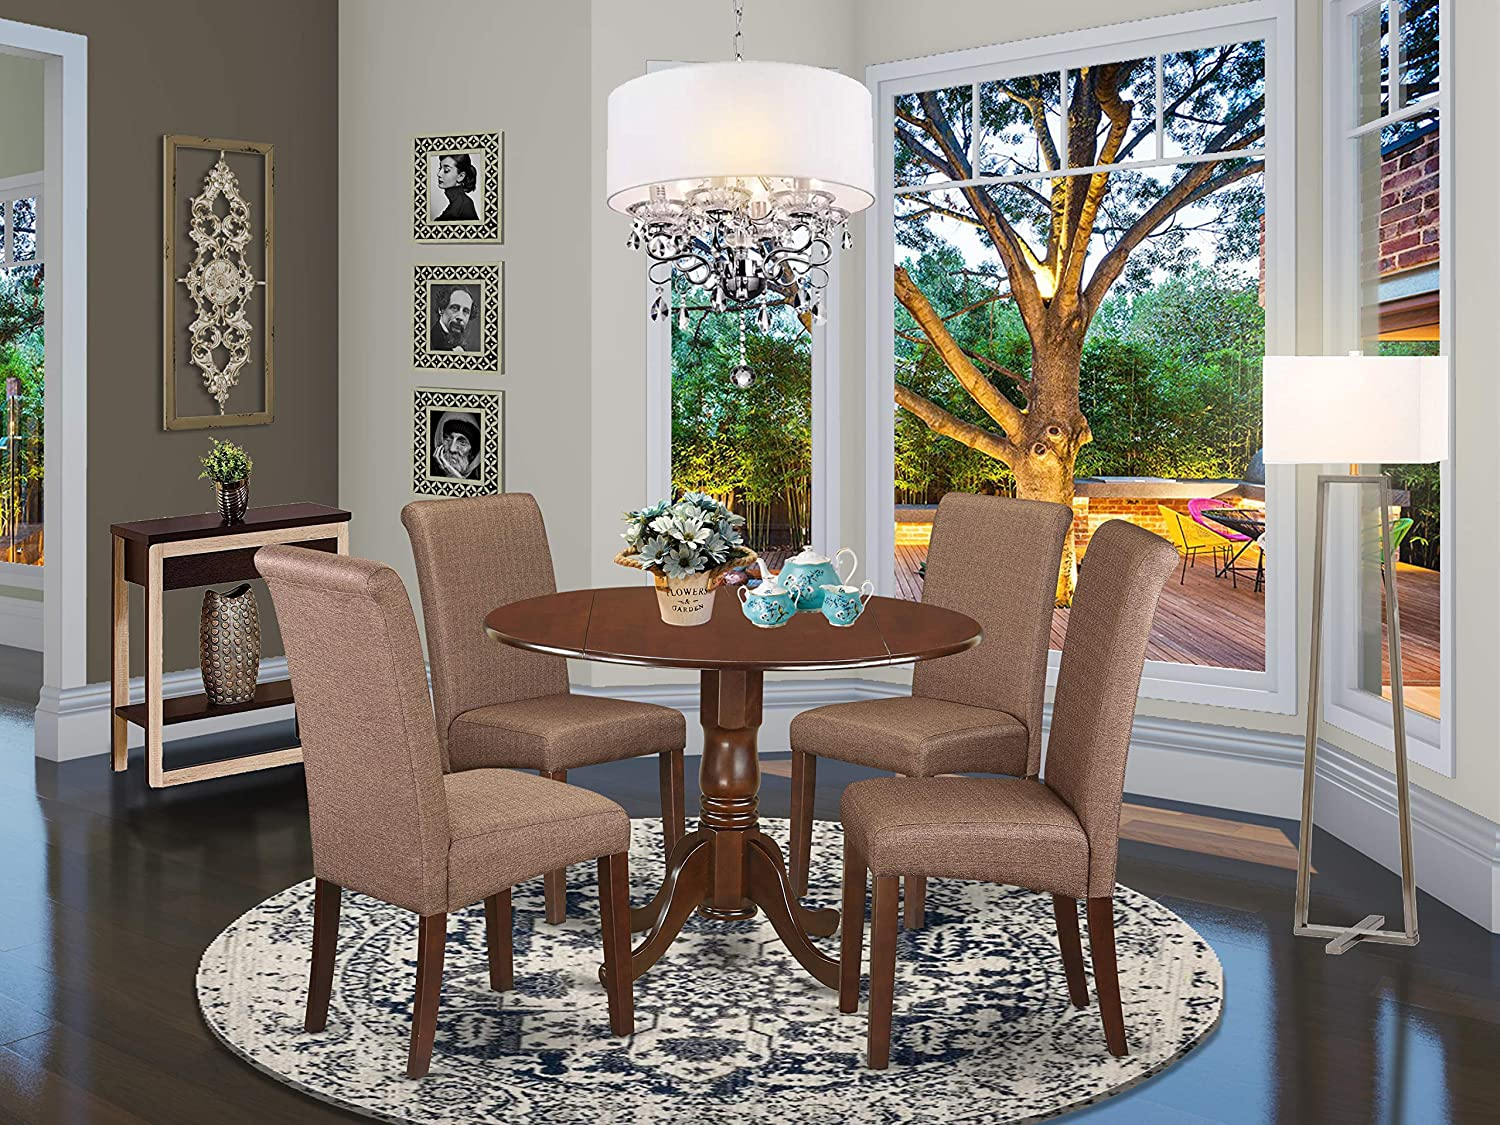 East West Furniture DLBA3-MAH-18 Wood Set 3 Pc-Brown Linen Fabric Chairs-Mahogany Finish Hardwood two 9-inch drop leaves Pedestal Dining Table and Structure 5